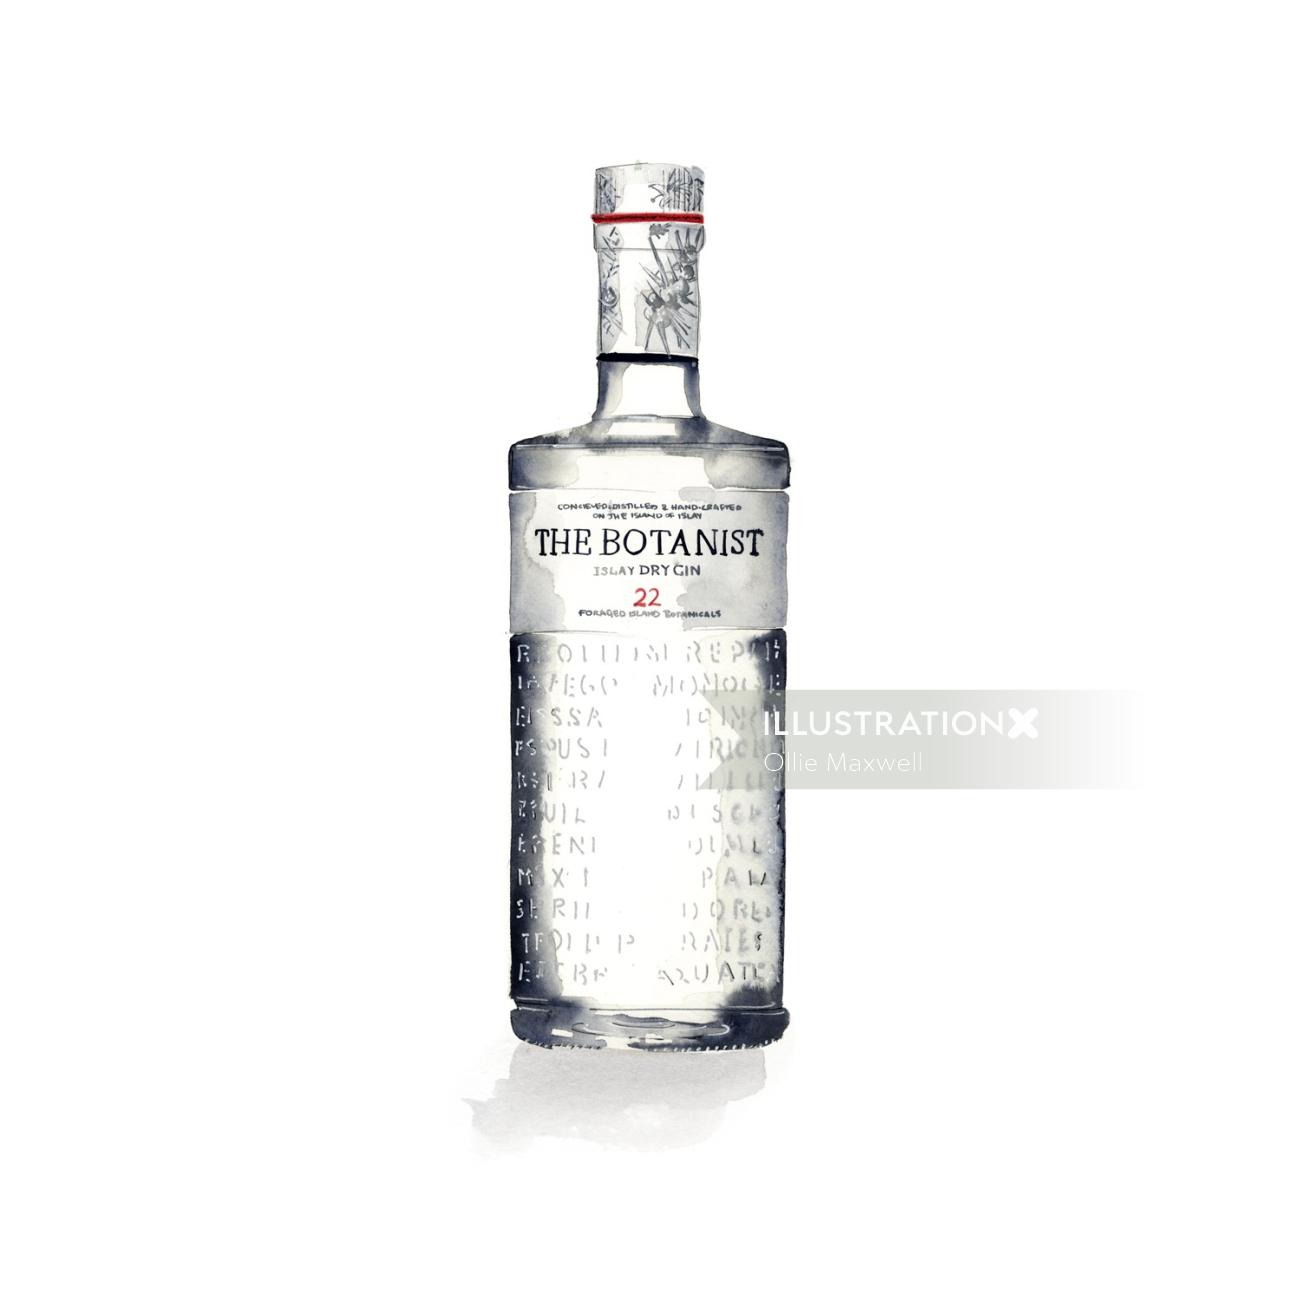 Food and drinks bottle of gin